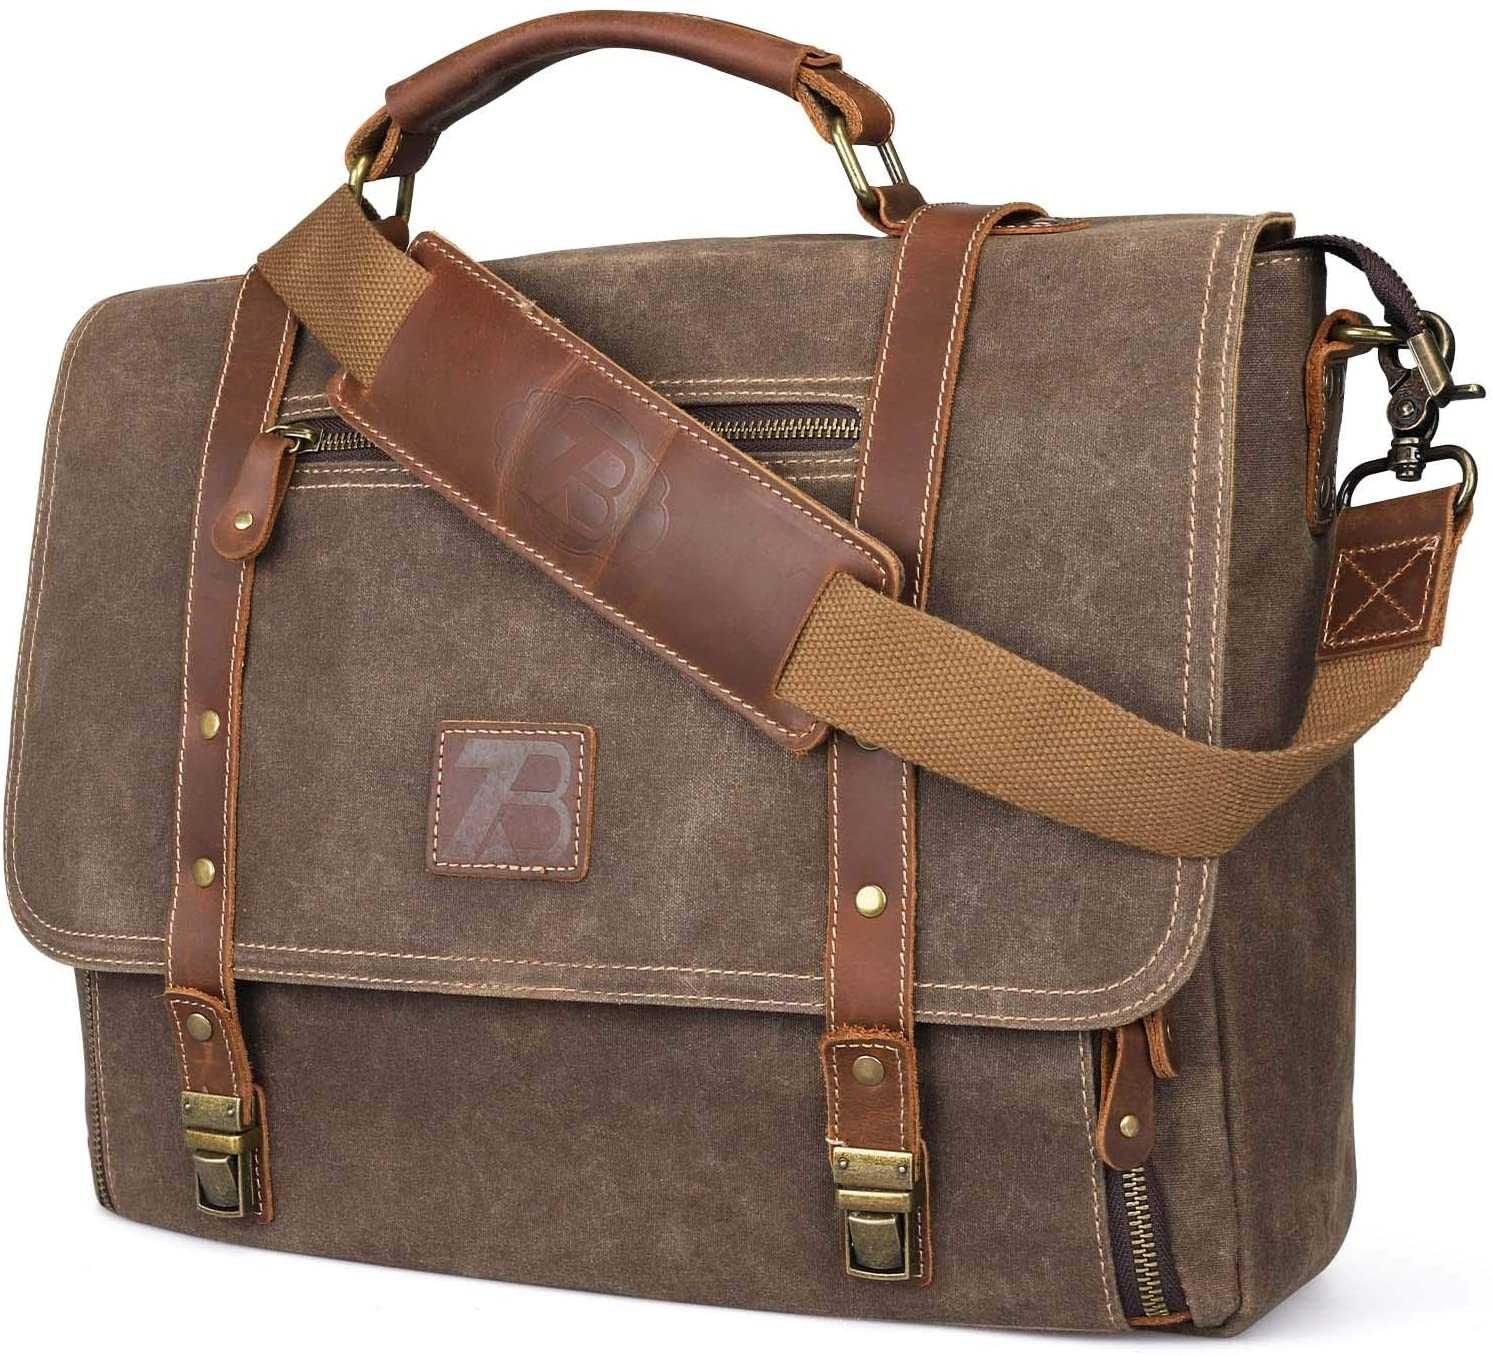 Manificent Laptop Messenger bag for Mens 15.6 Inch, Waterproof Vintage Genuine Leather Mens Briefcase shoulder bag 16 Storage Pockets, Waxed Canvas Leather Computer Business Satchel Work Bag (Brown)